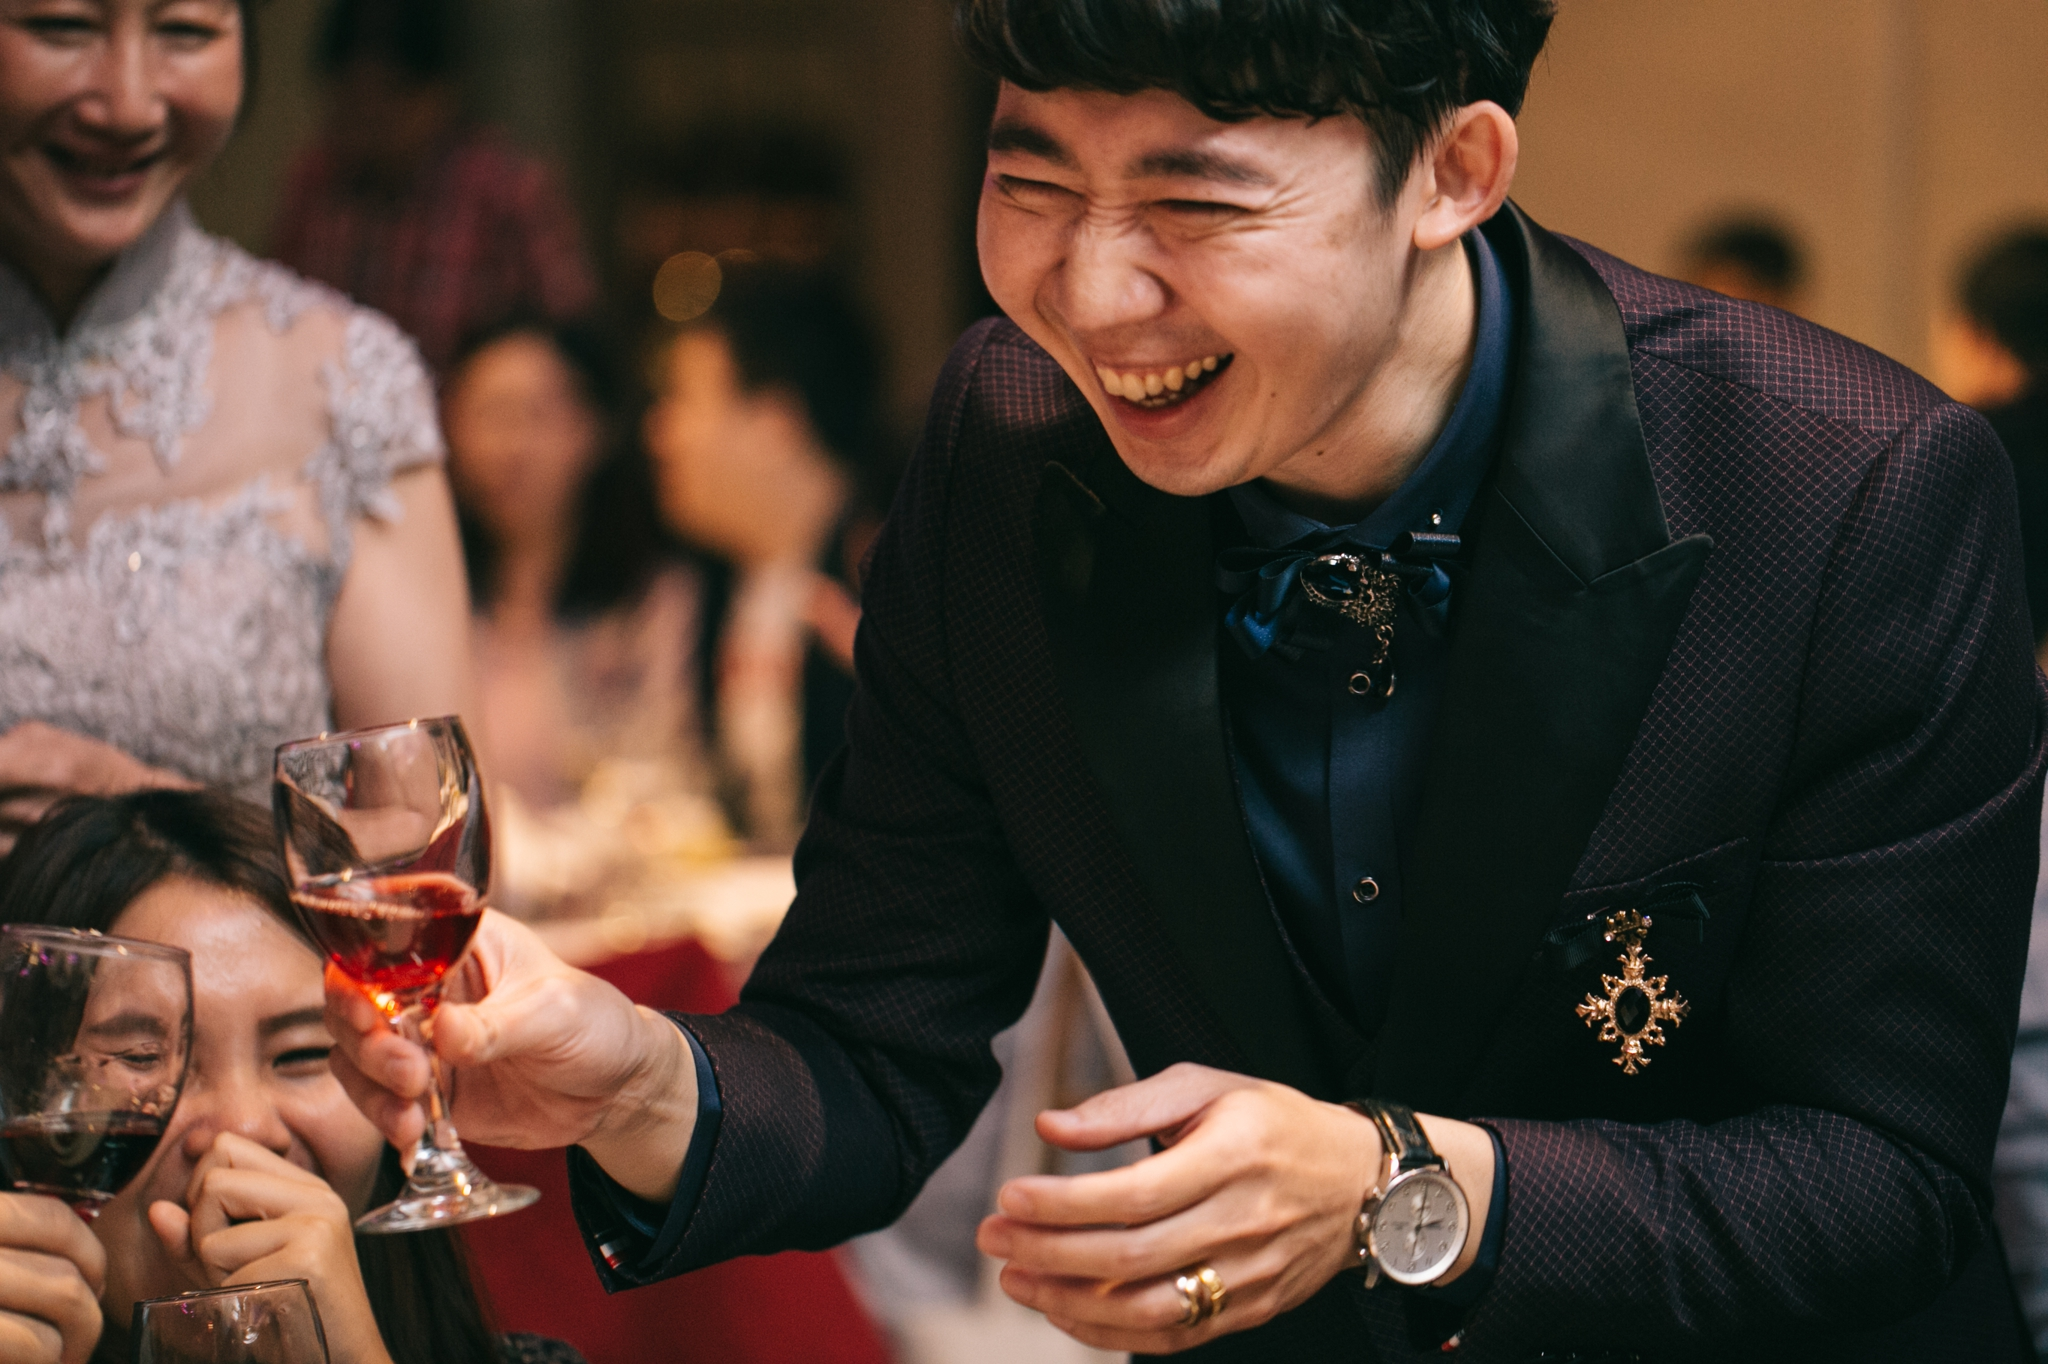 Keddy+Richard-wedding-新莊頤品飯店-218.jpg